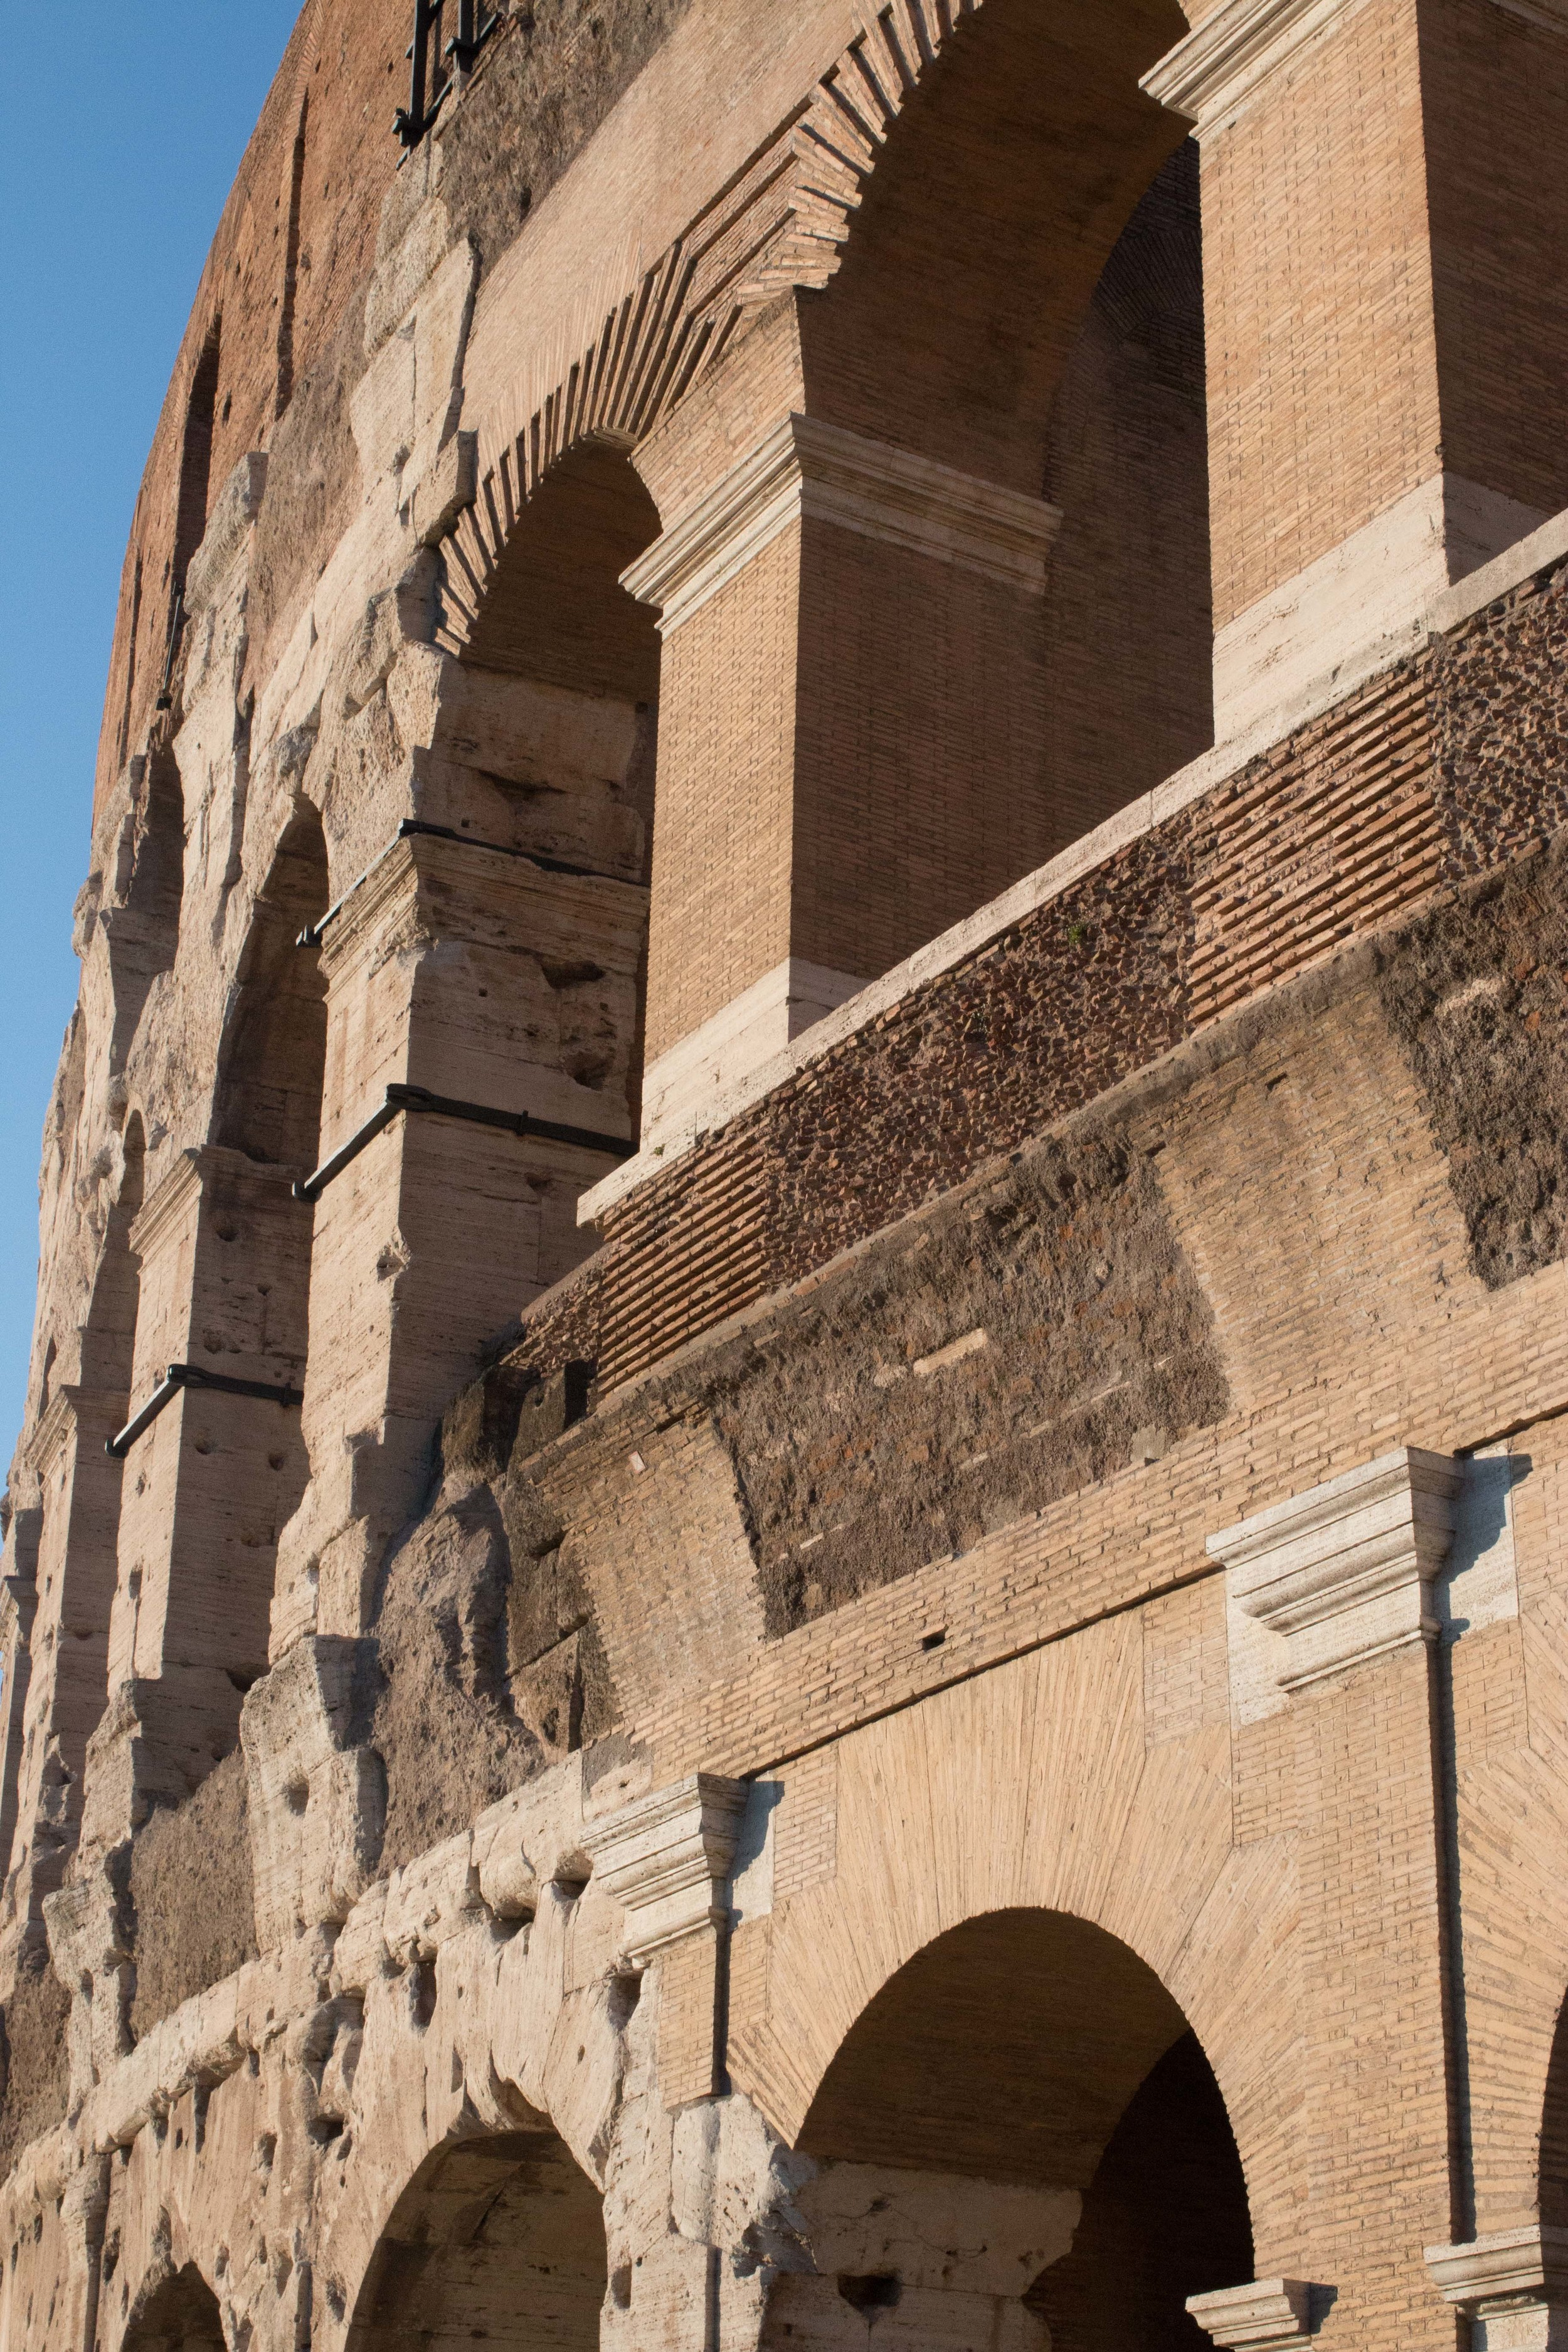 Here you can see where parts of the colosseum have been reconstructed for added stability